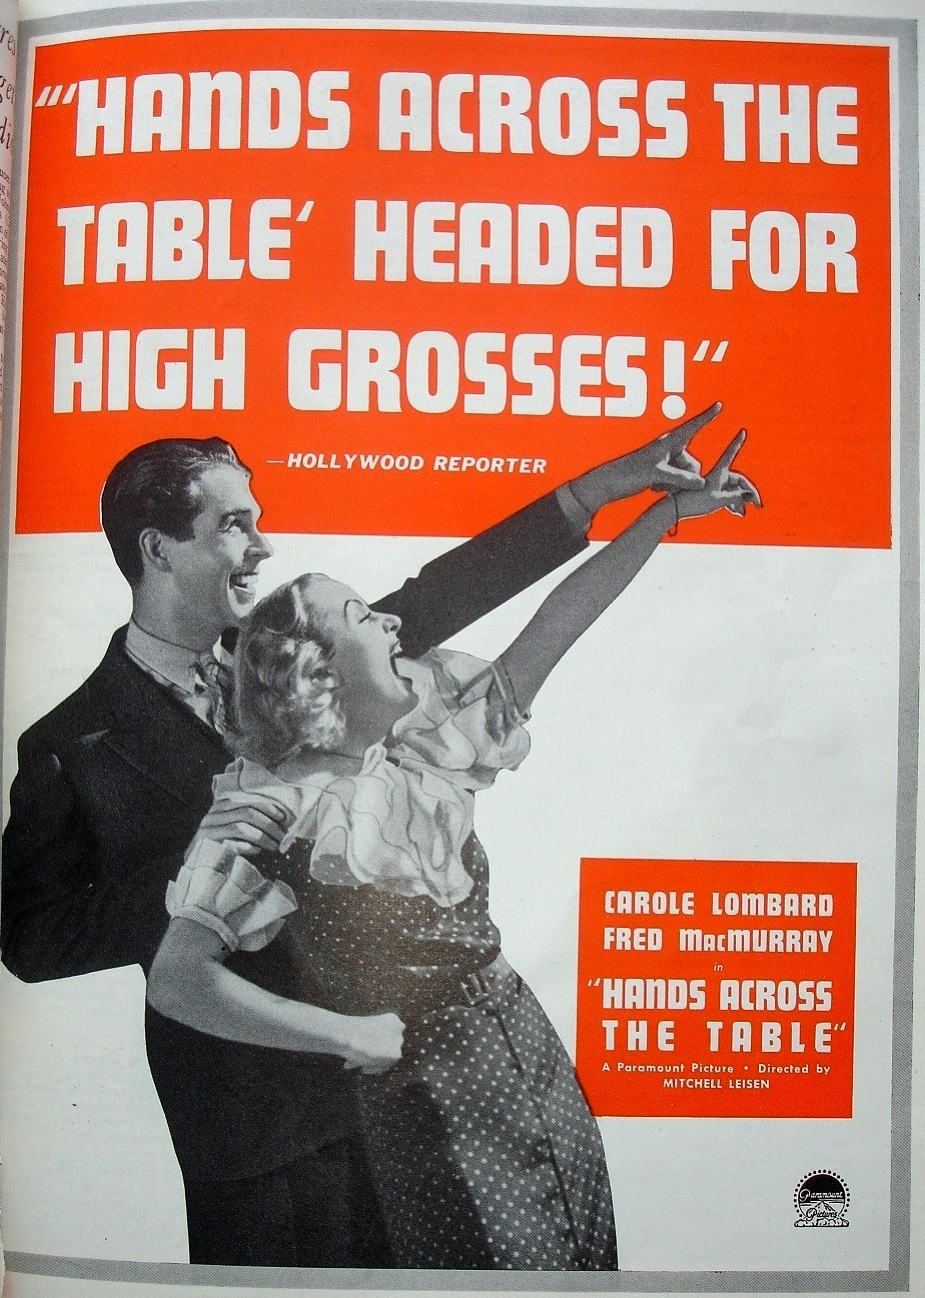 carole lombard hands across the table motion picture herald 101935a